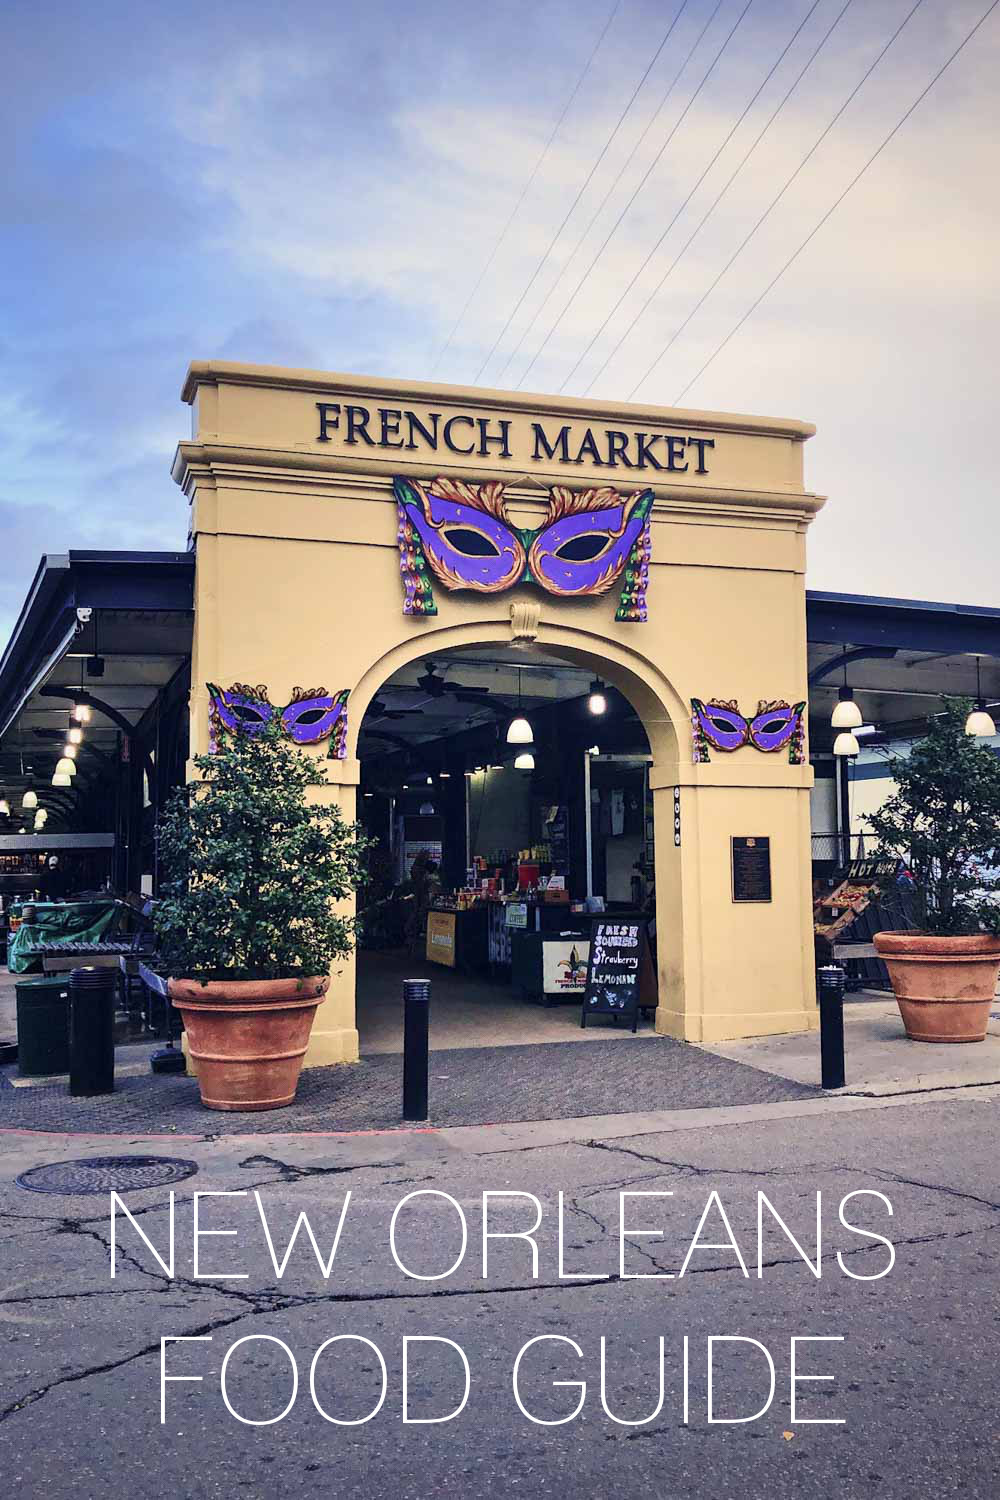 New Orleans Food Guide